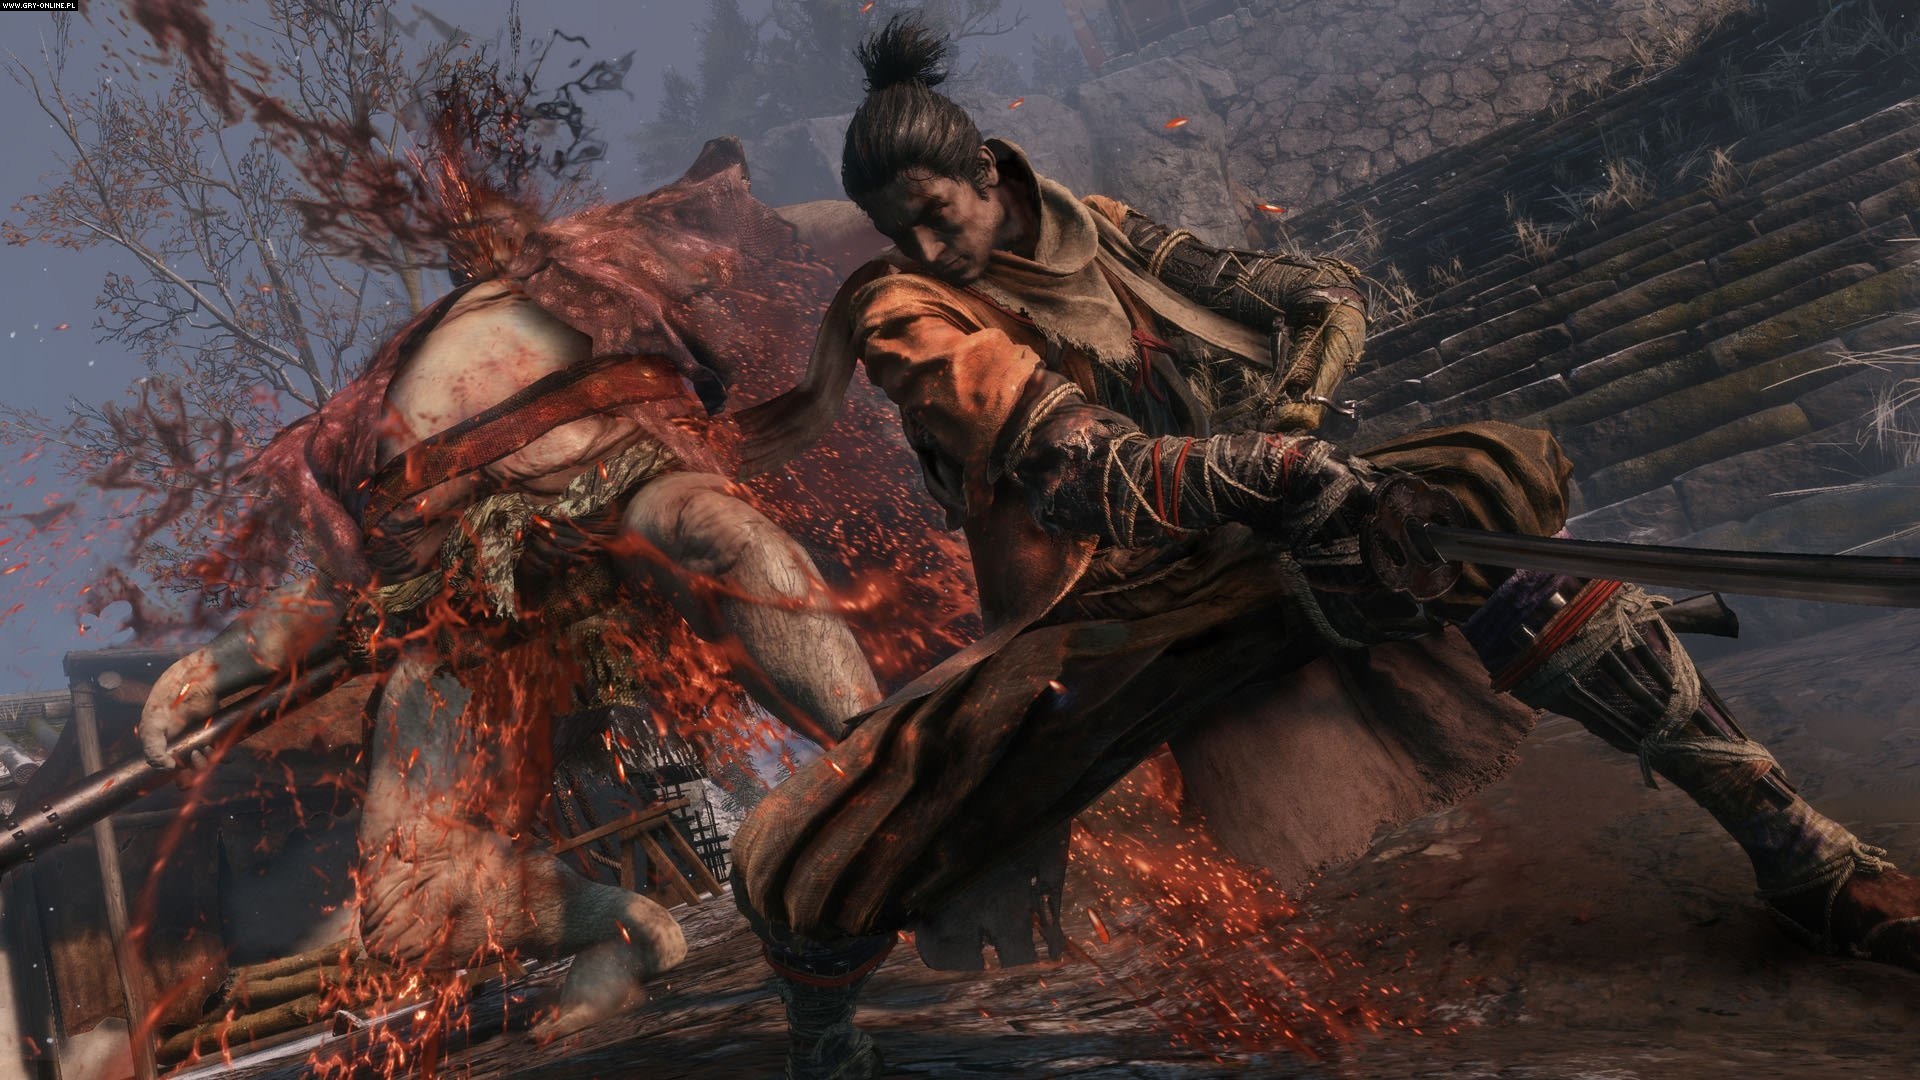 Sekiro: Shadows Die Twice PC, PS4, XONE Games Image 2/29, FromSoftware, Activision Blizzard